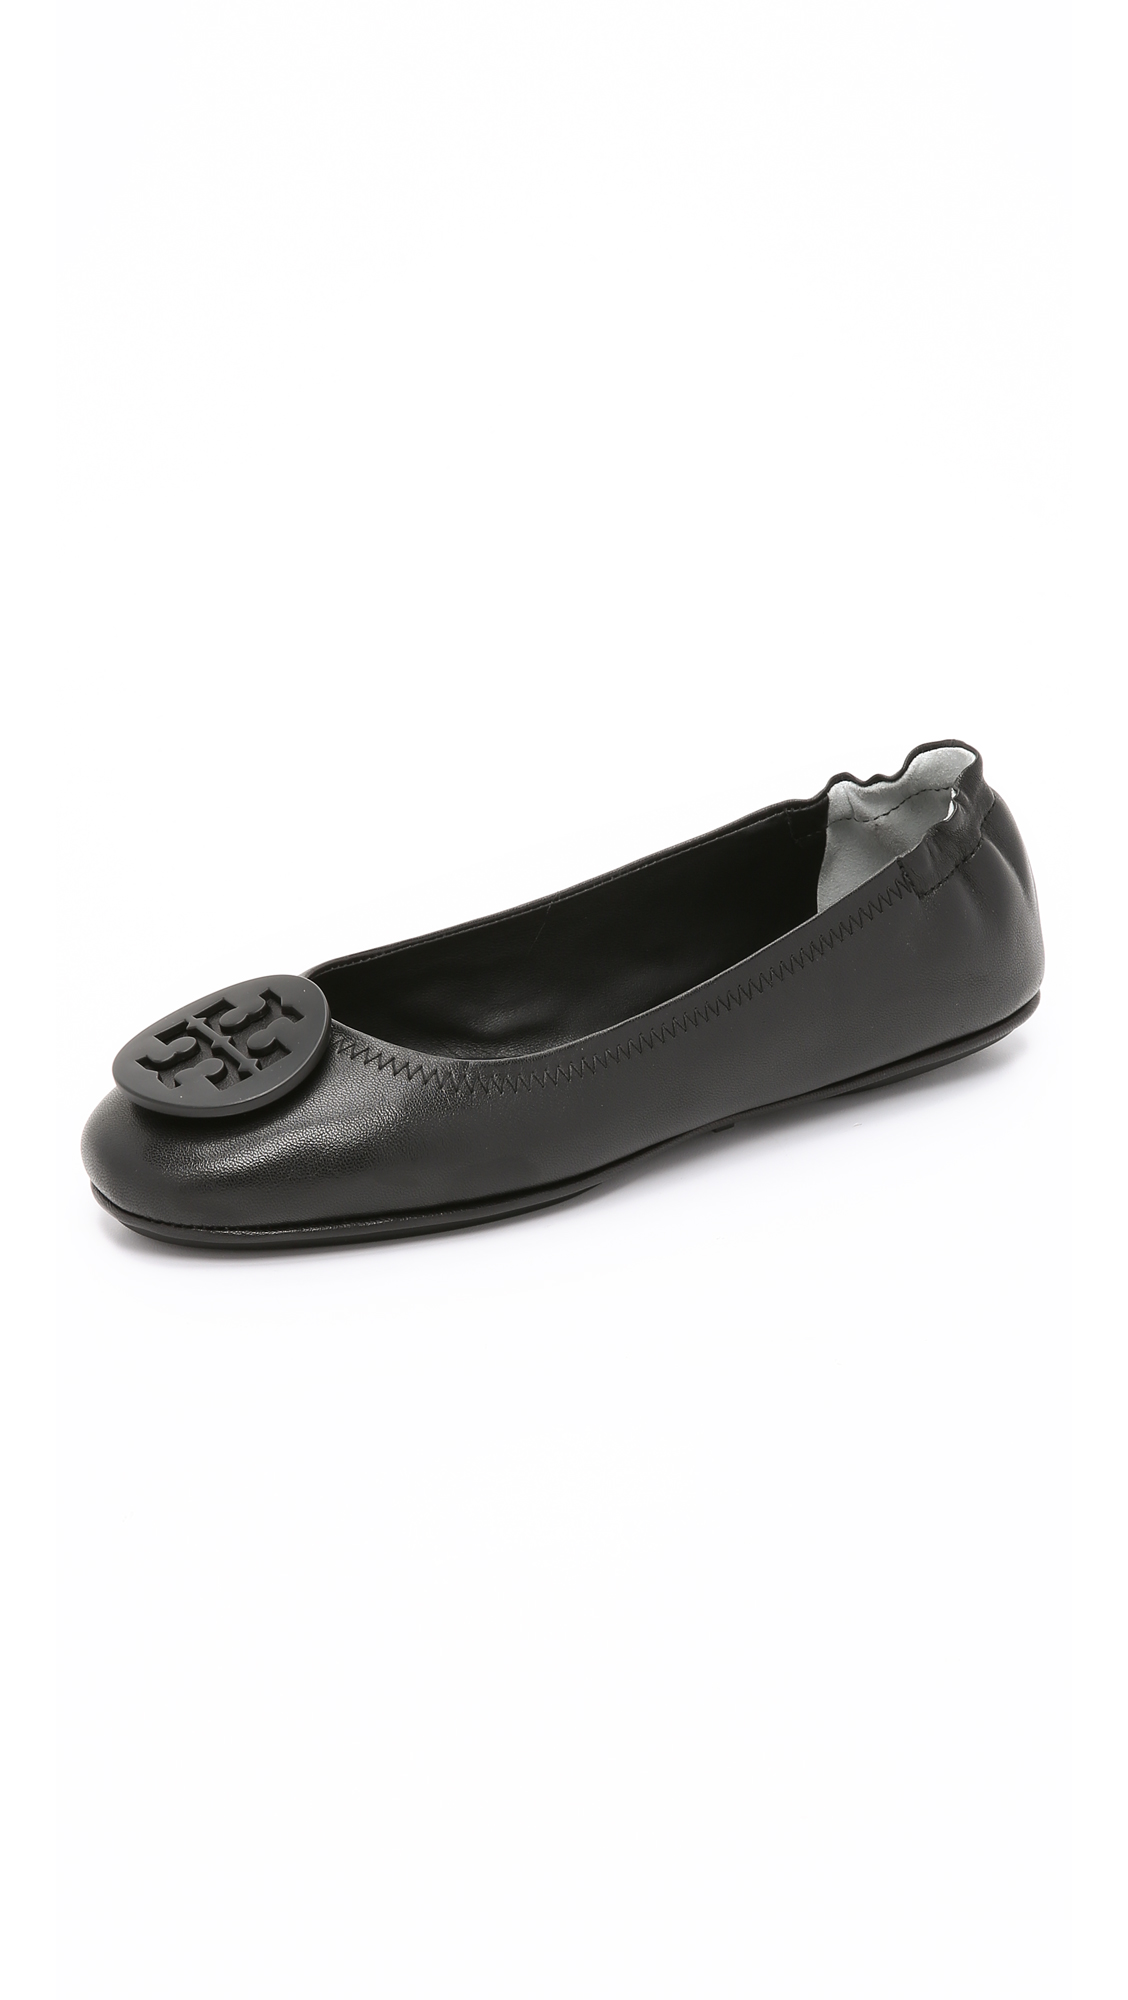 Tory Burch Women's Minnie Leather Travel Ballet Flats In Black